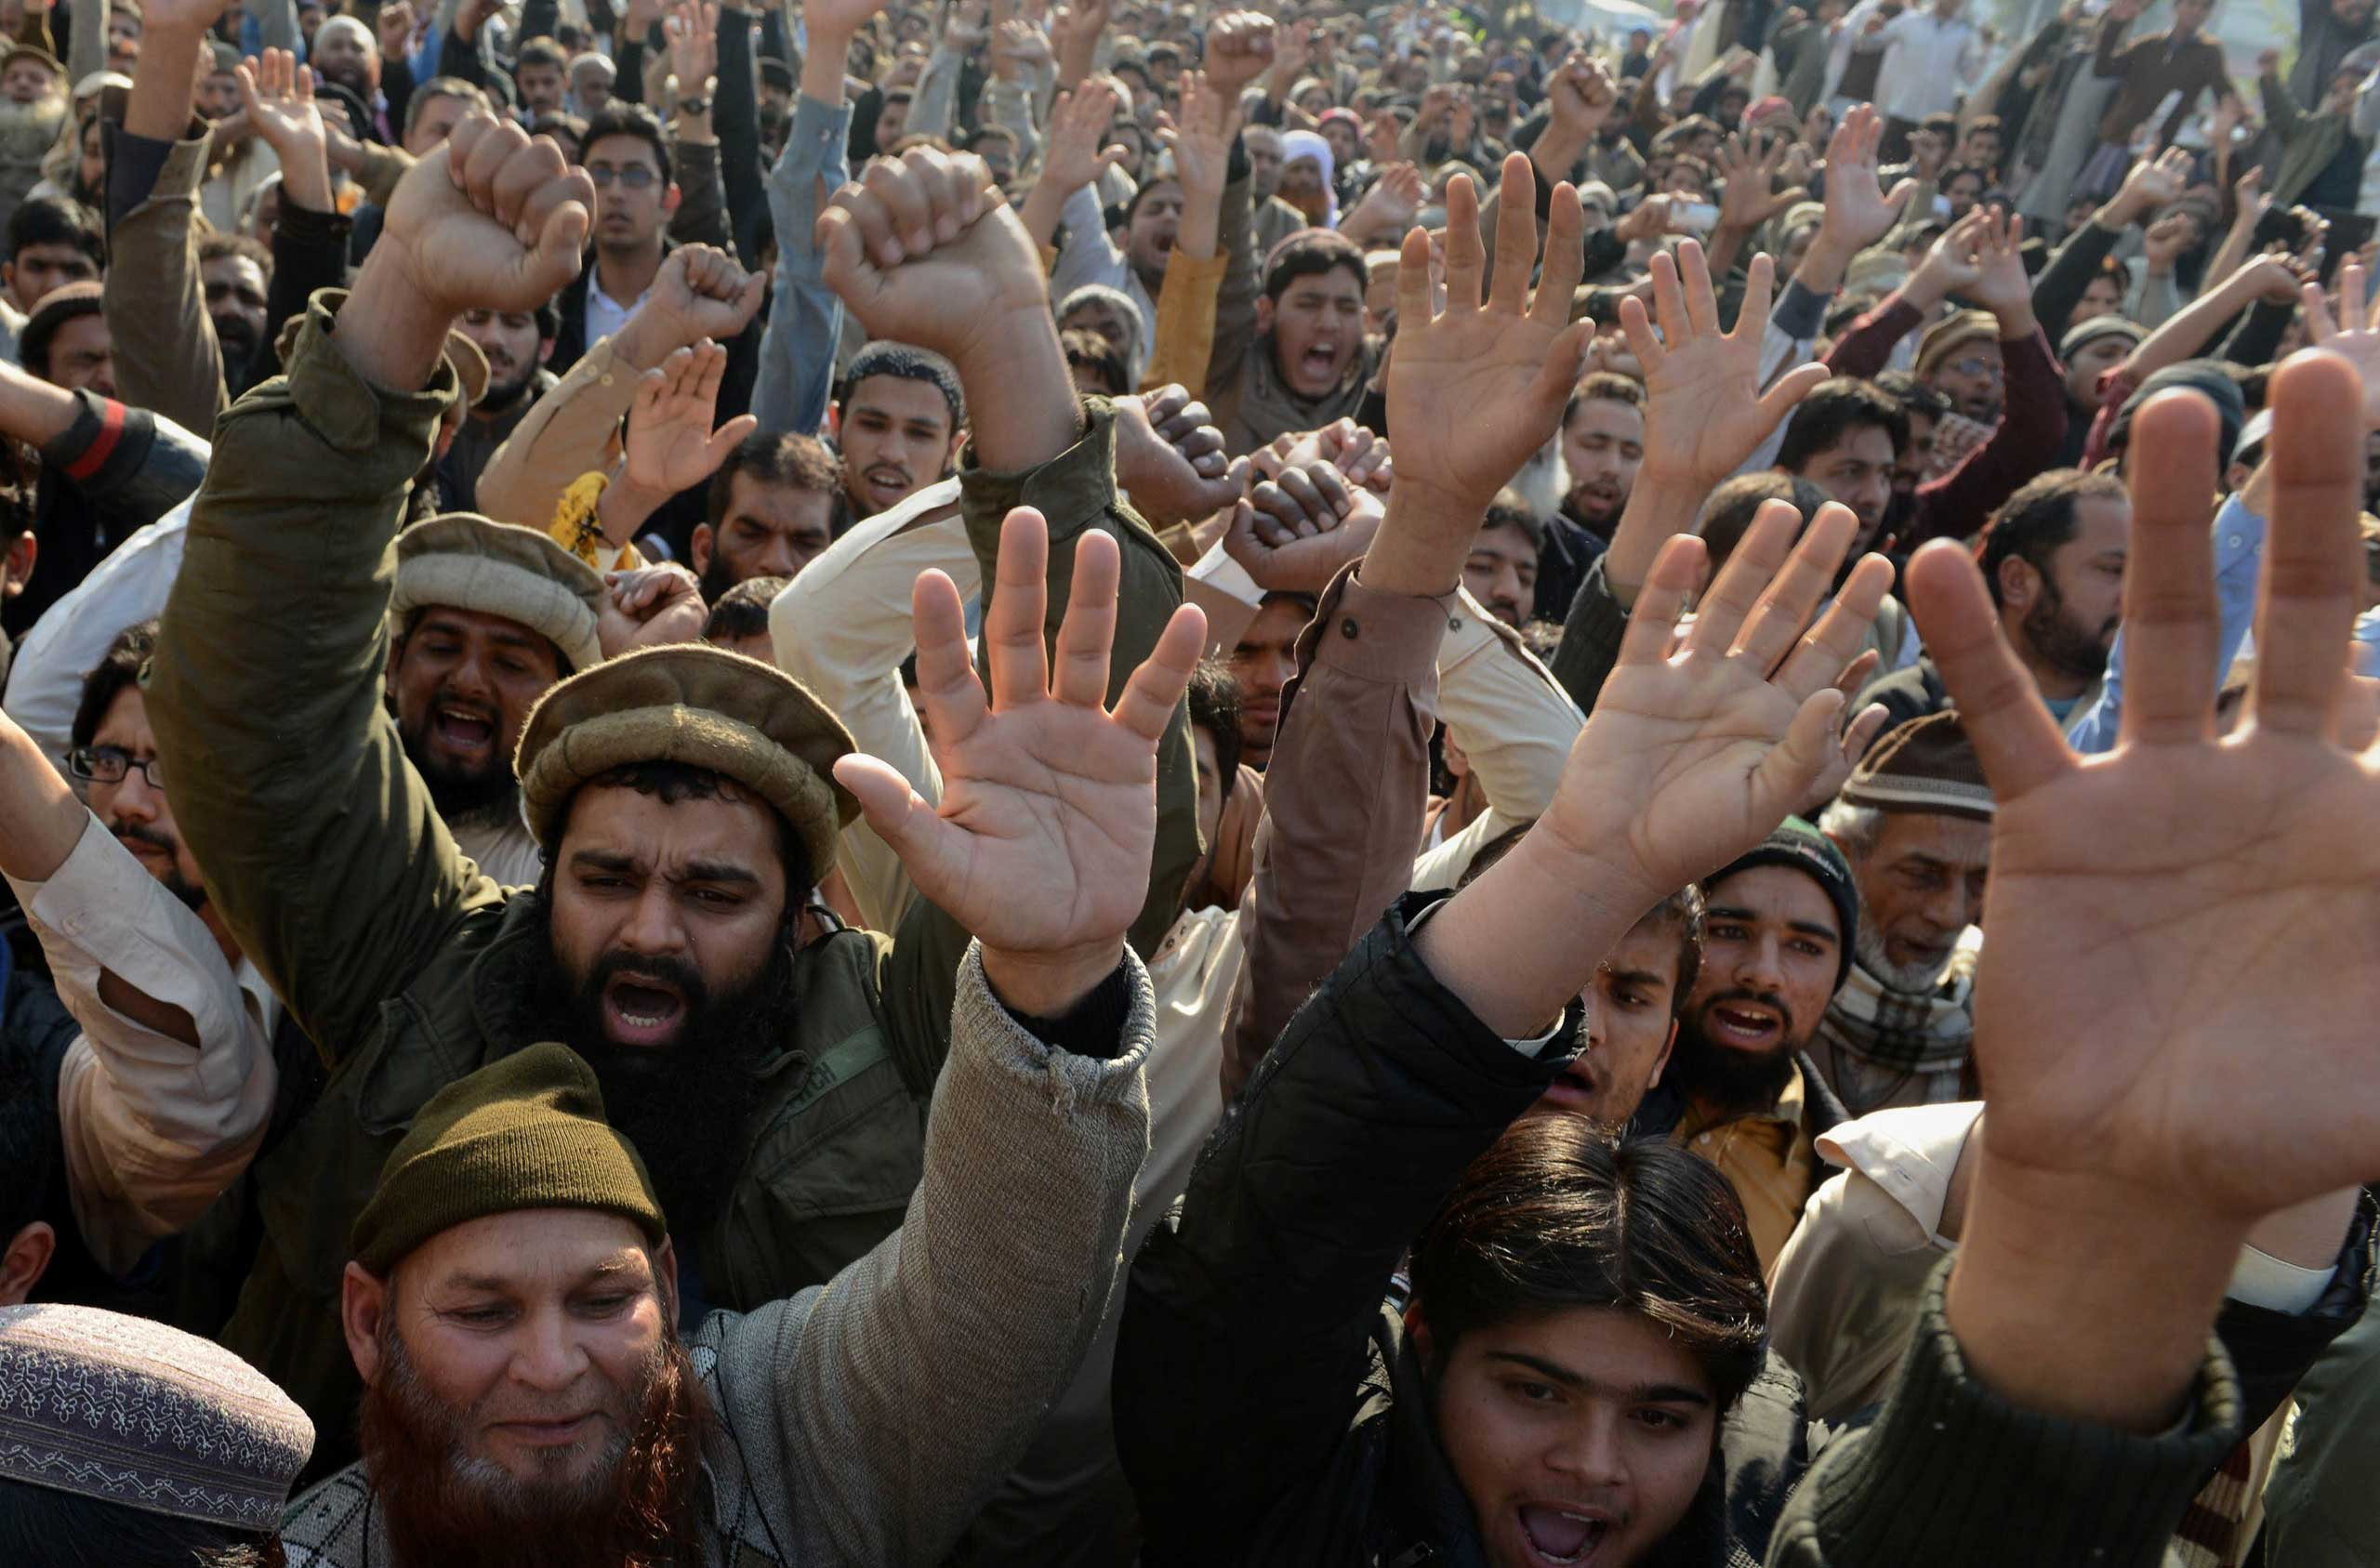 Pakistani protesters shout slogans against the printing of satirical sketches of the Prophet Muhammad by French magazine Charlie Hebdo during a demonstration in Lahore, Pakistan on Jan. 16, 2015.